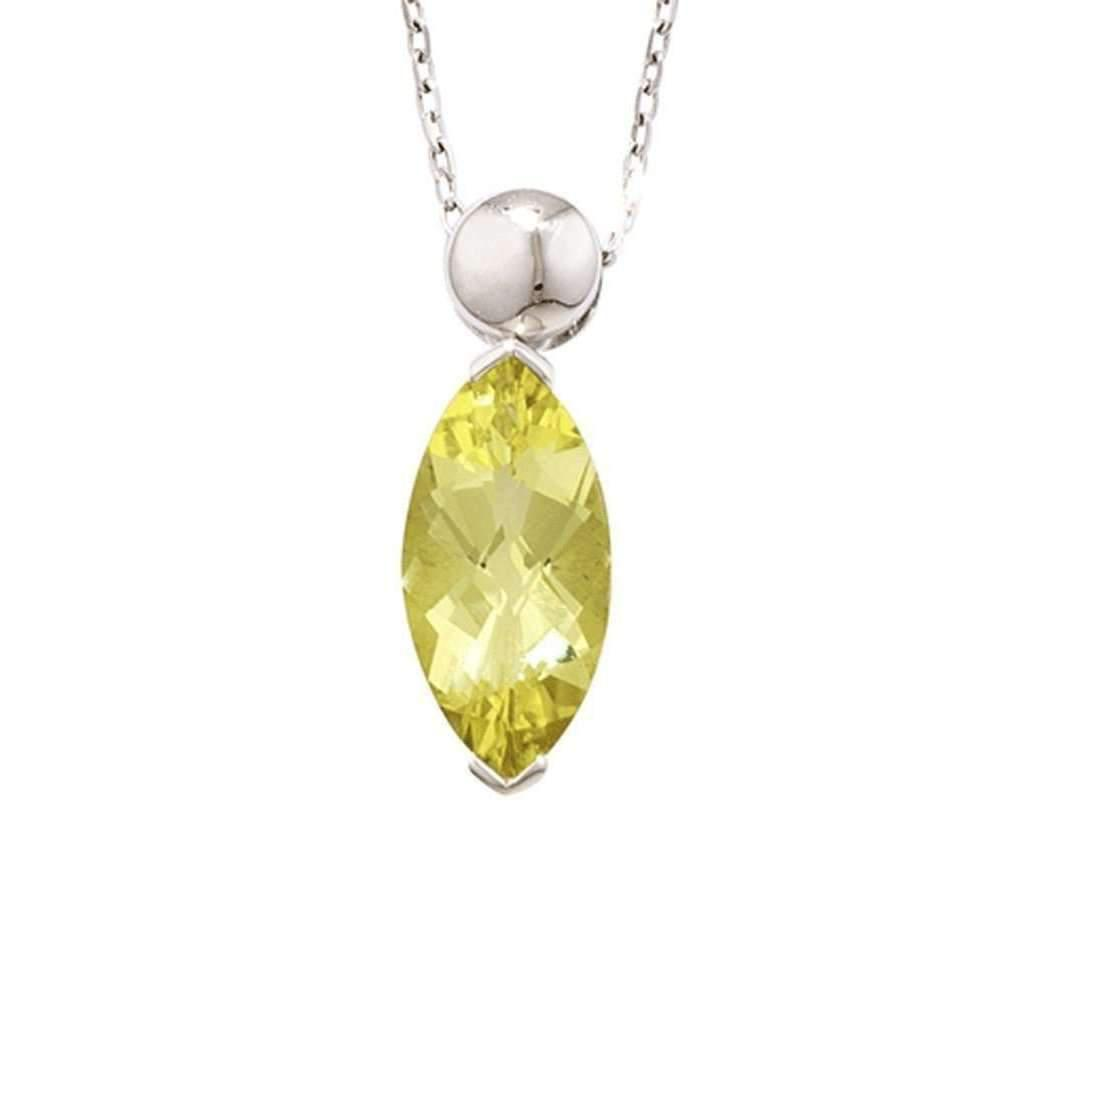 London Road Jewellery Bloomsbury White Gold Marquise Lemon Quartz Pendant